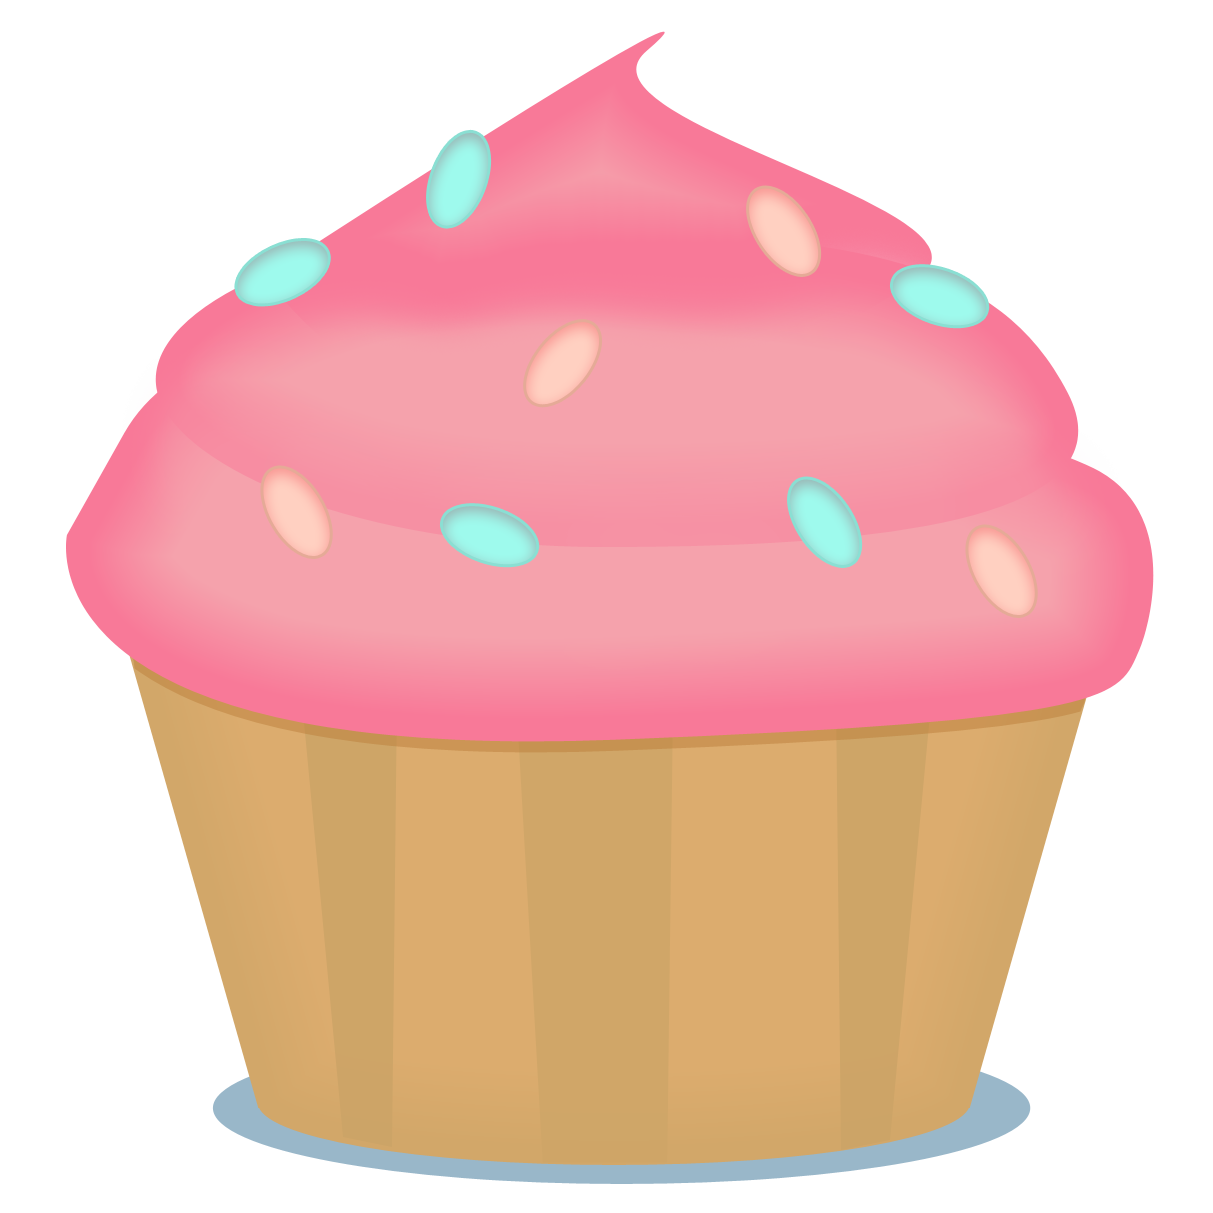 baking clipart bake oven